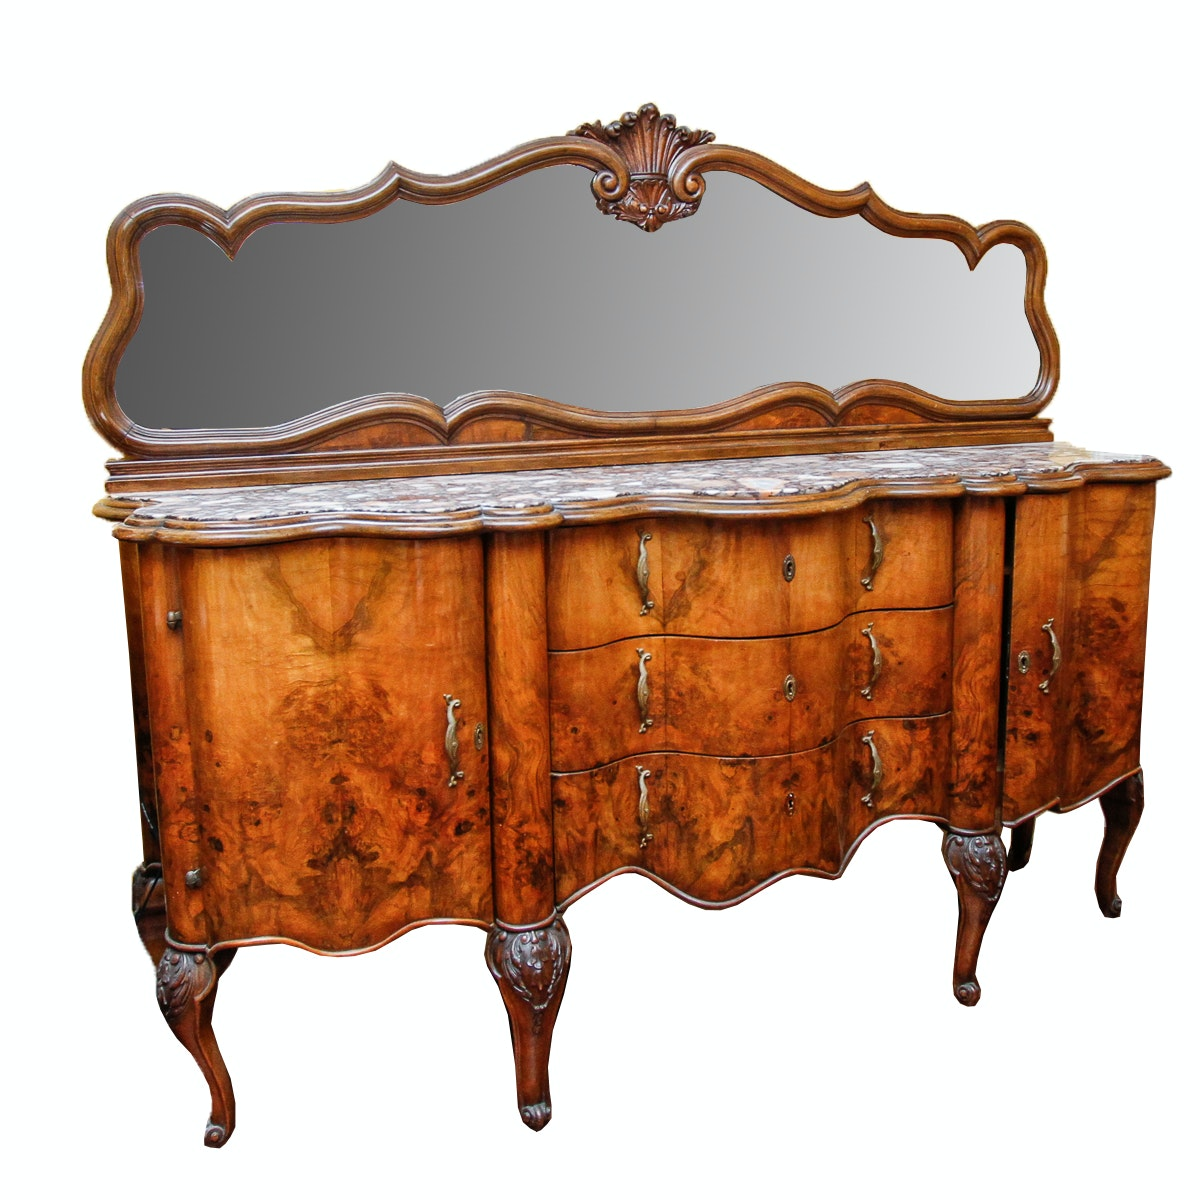 Antique Continental Baroque Style Marble Top Sideboard